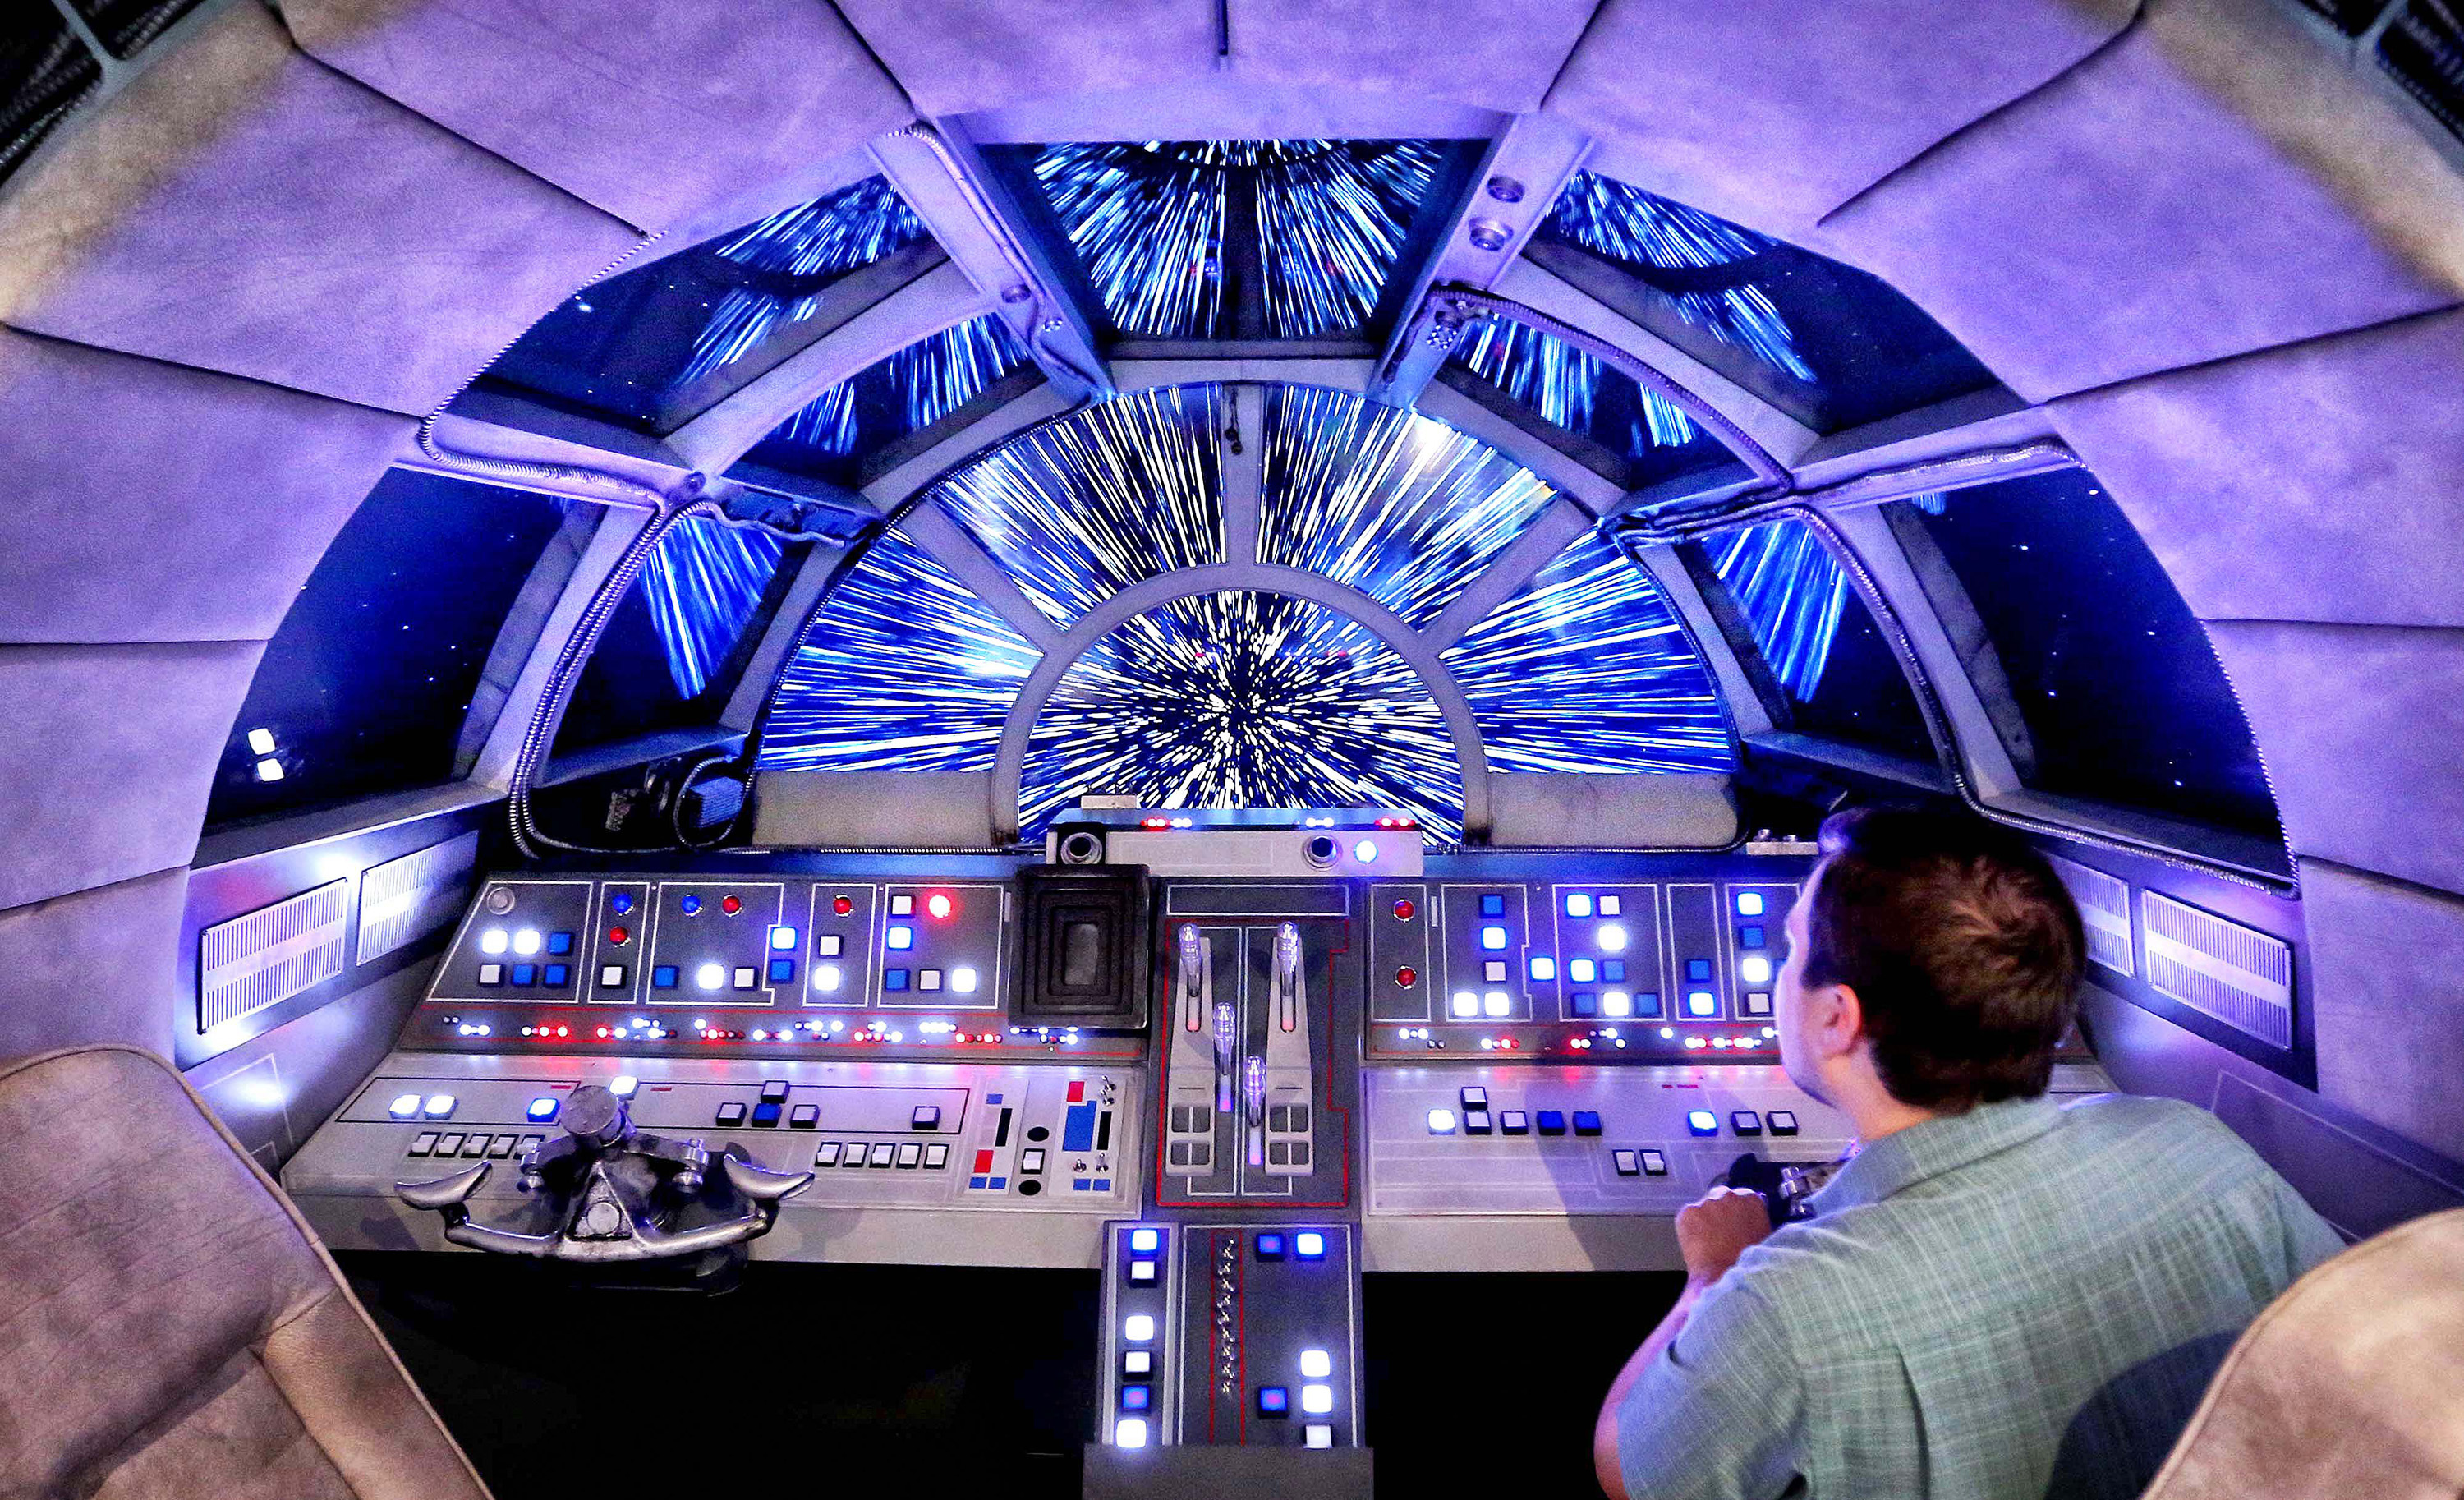 Danny Handke, a creative design executive with Walt Disney Imagineering, demonstrates the hyper reality of the cockpit in the new Star Wars Millennium Falcon play area onboard the Disney Dream, as Disney Cruise Lines unveils the enhancements to the ship on Oct. 30, 2015.